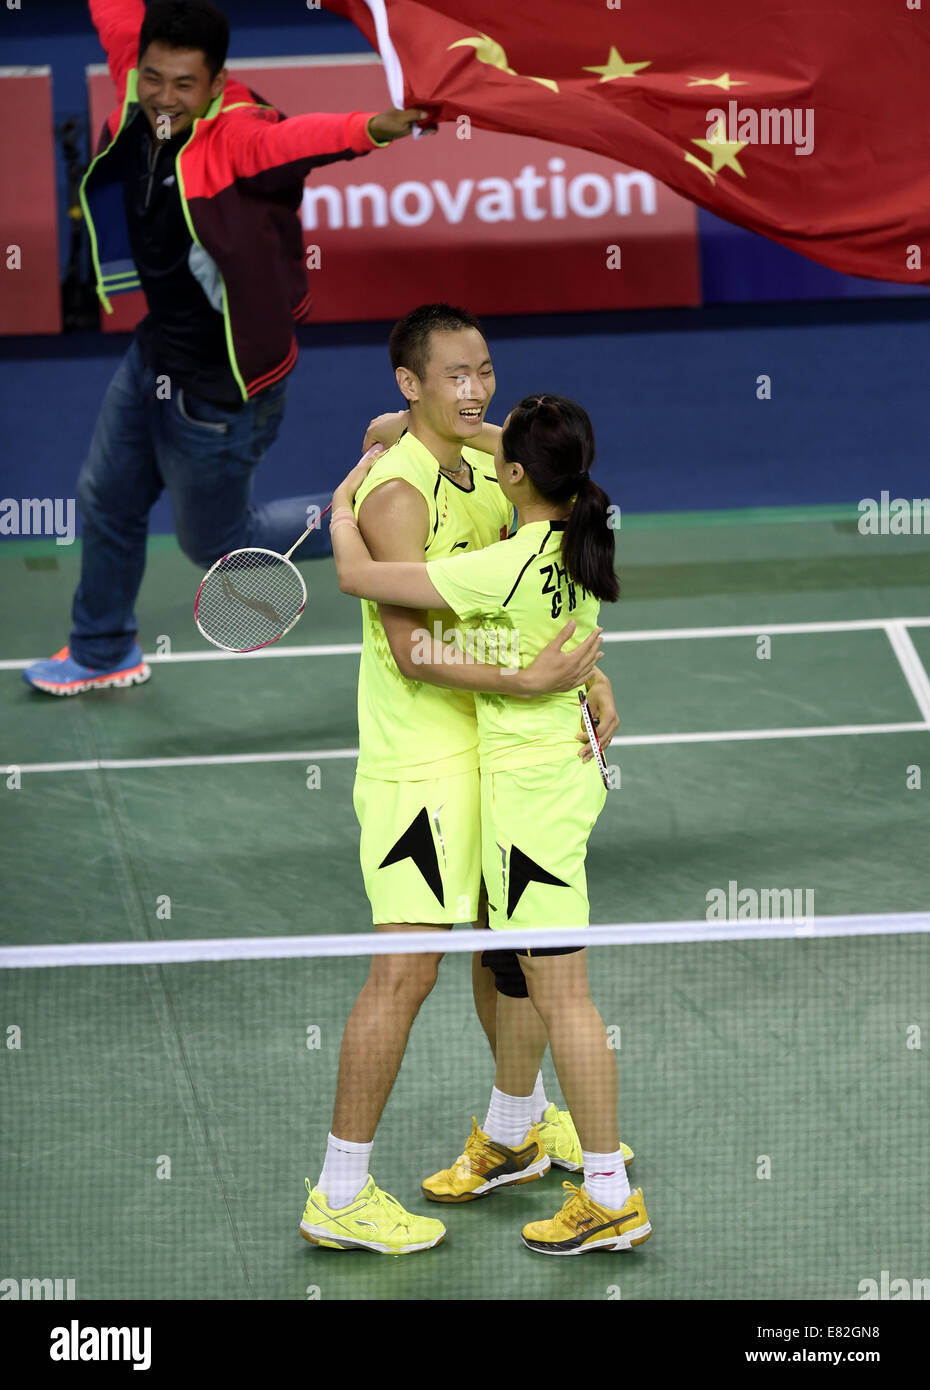 Incheon South Korea 29th Sep 2014 Zhang Nan L and Zhao